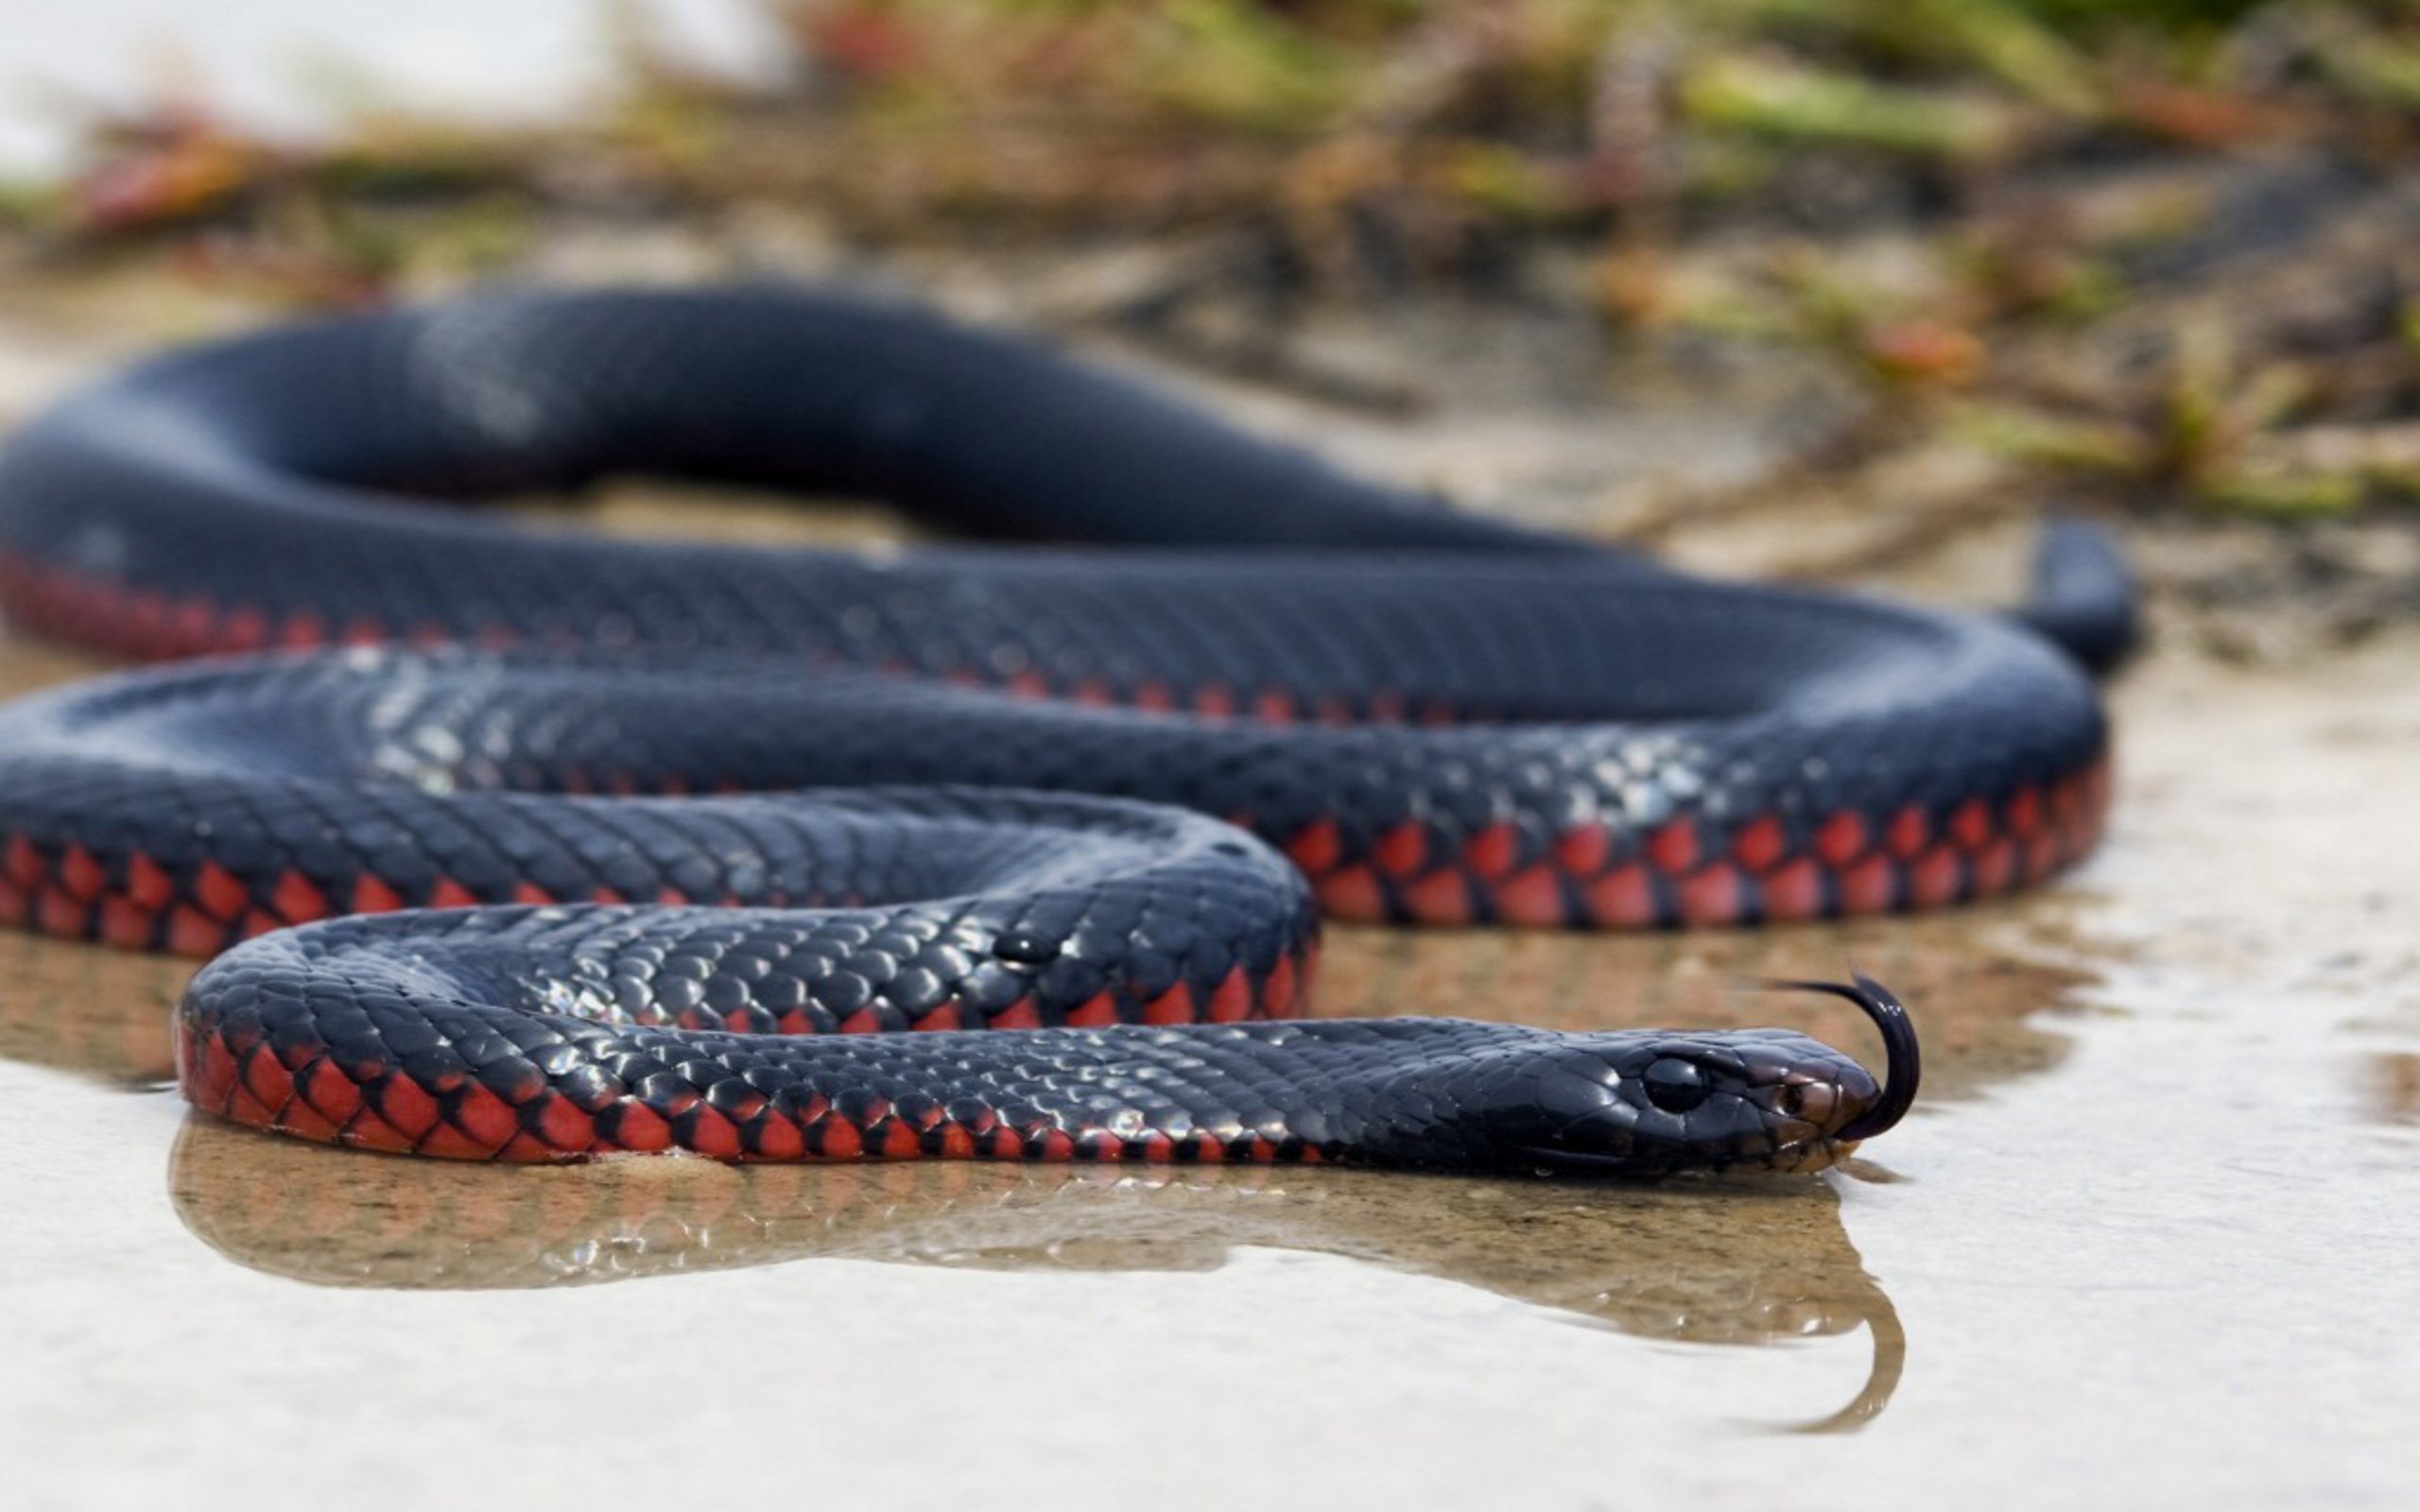 Awesome Black Mamba Snake Images Ehidna Zmeya 2188345 Hd Wallpaper Backgrounds Download